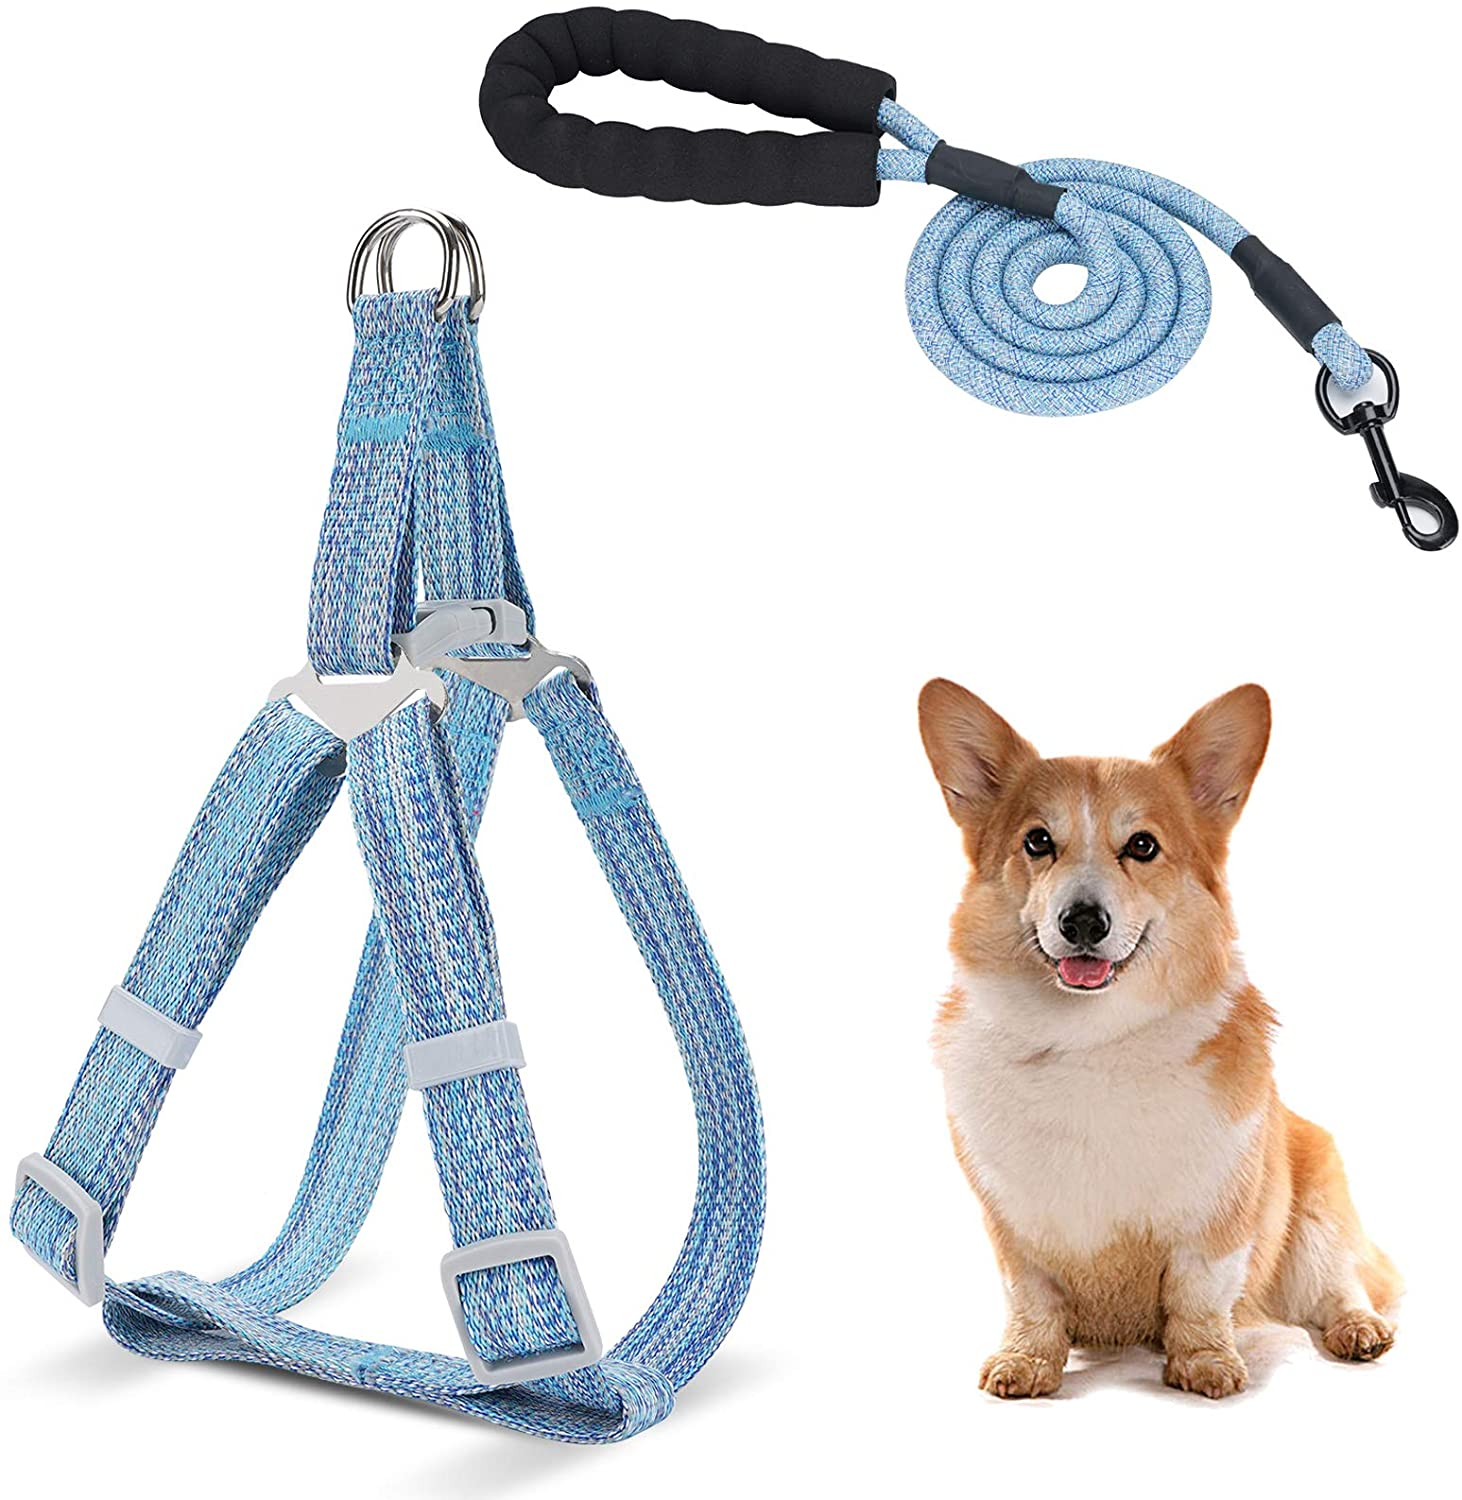 WANTRYAPET Dog Leash Harness Set, Durable Adjustable Heavy Duty Dog Harness,Soft Padded Handle Pet Leash for Dogs,Perfect for Dog Daily Training Walking Running